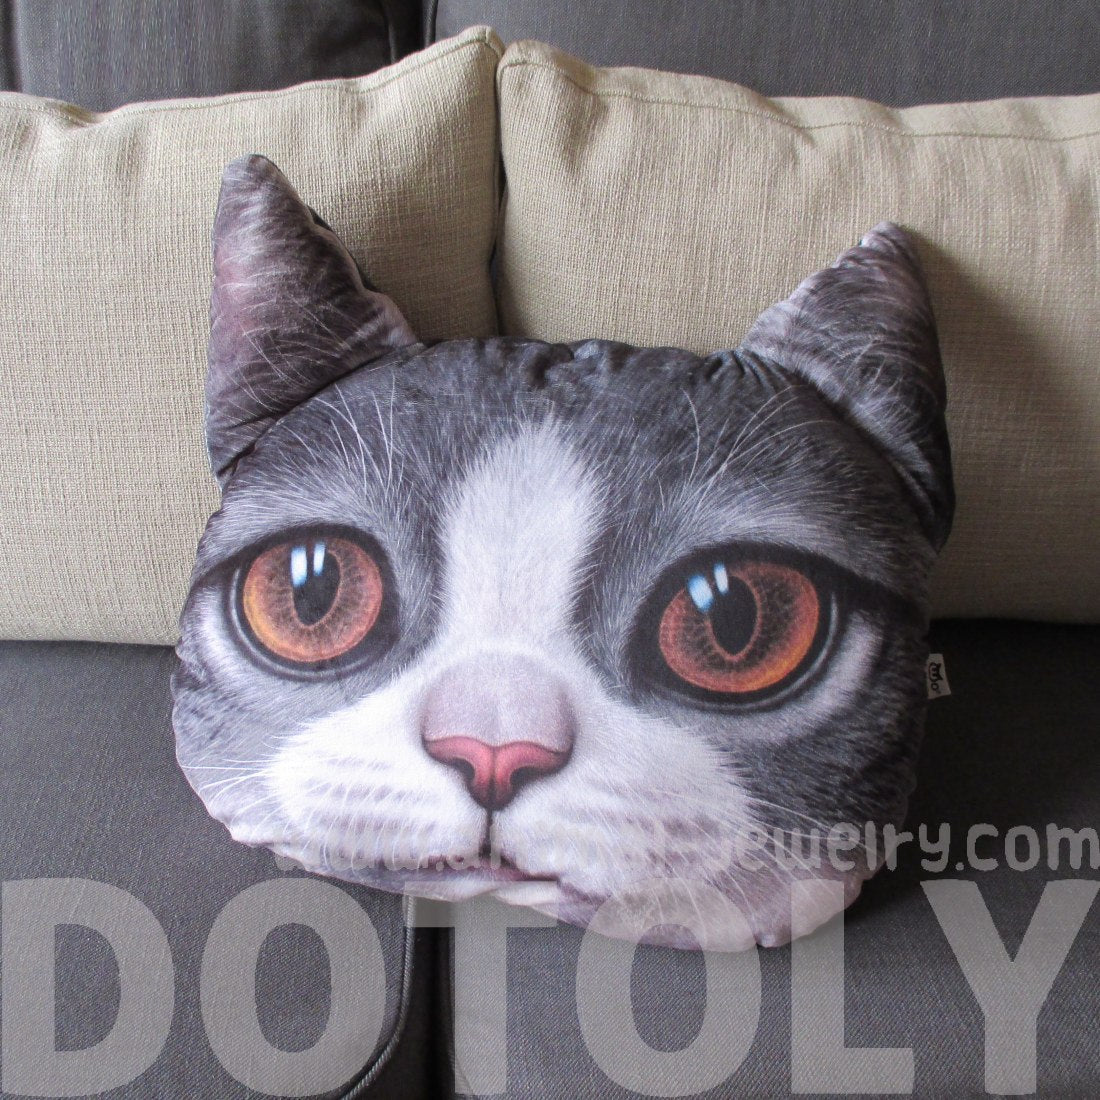 realistic-grey-and-white-kitty-cat-face-shaped-animal-themed-large-cushion-pillow